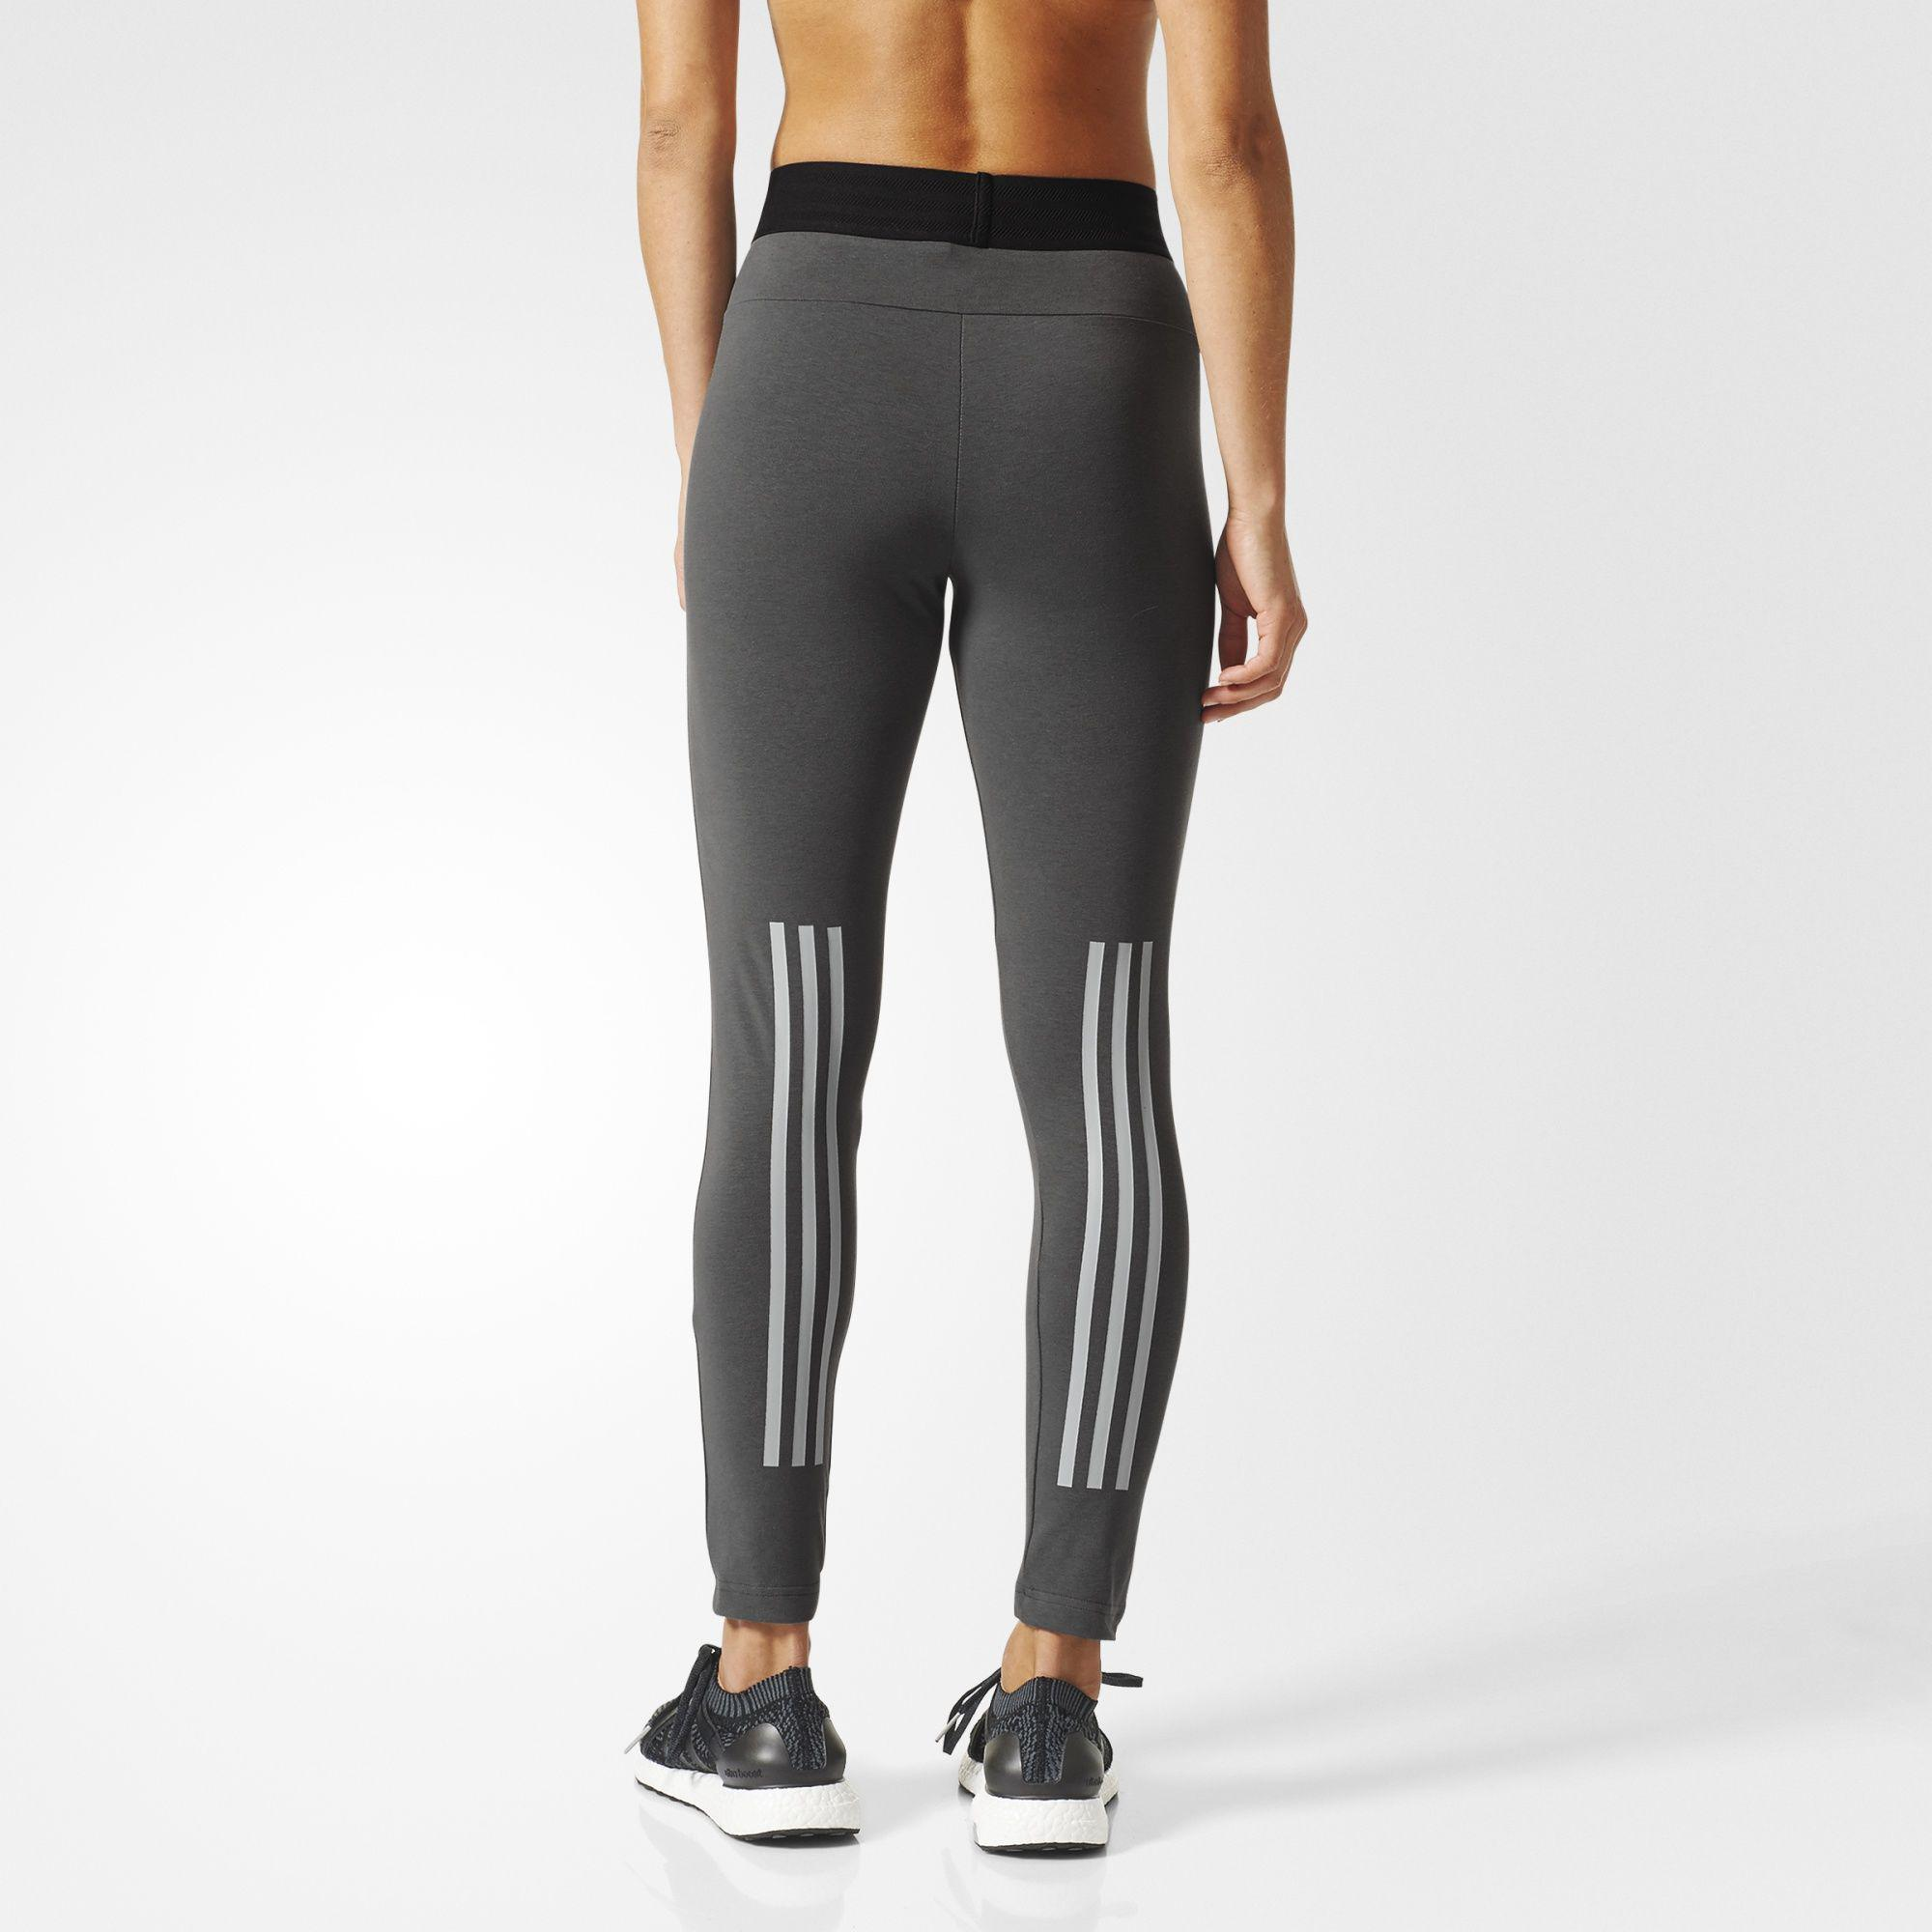 d1482be44128a2 Adidas Womens Sport ID Tights - Grey - Tennisnuts.com